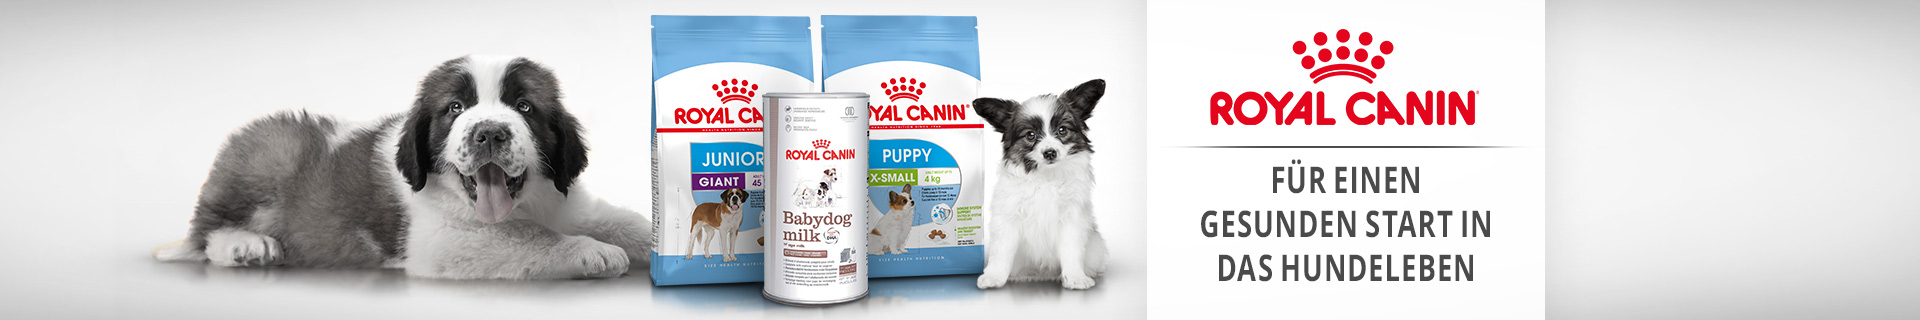 Royal Canin Hundefutter Puppy & Junior